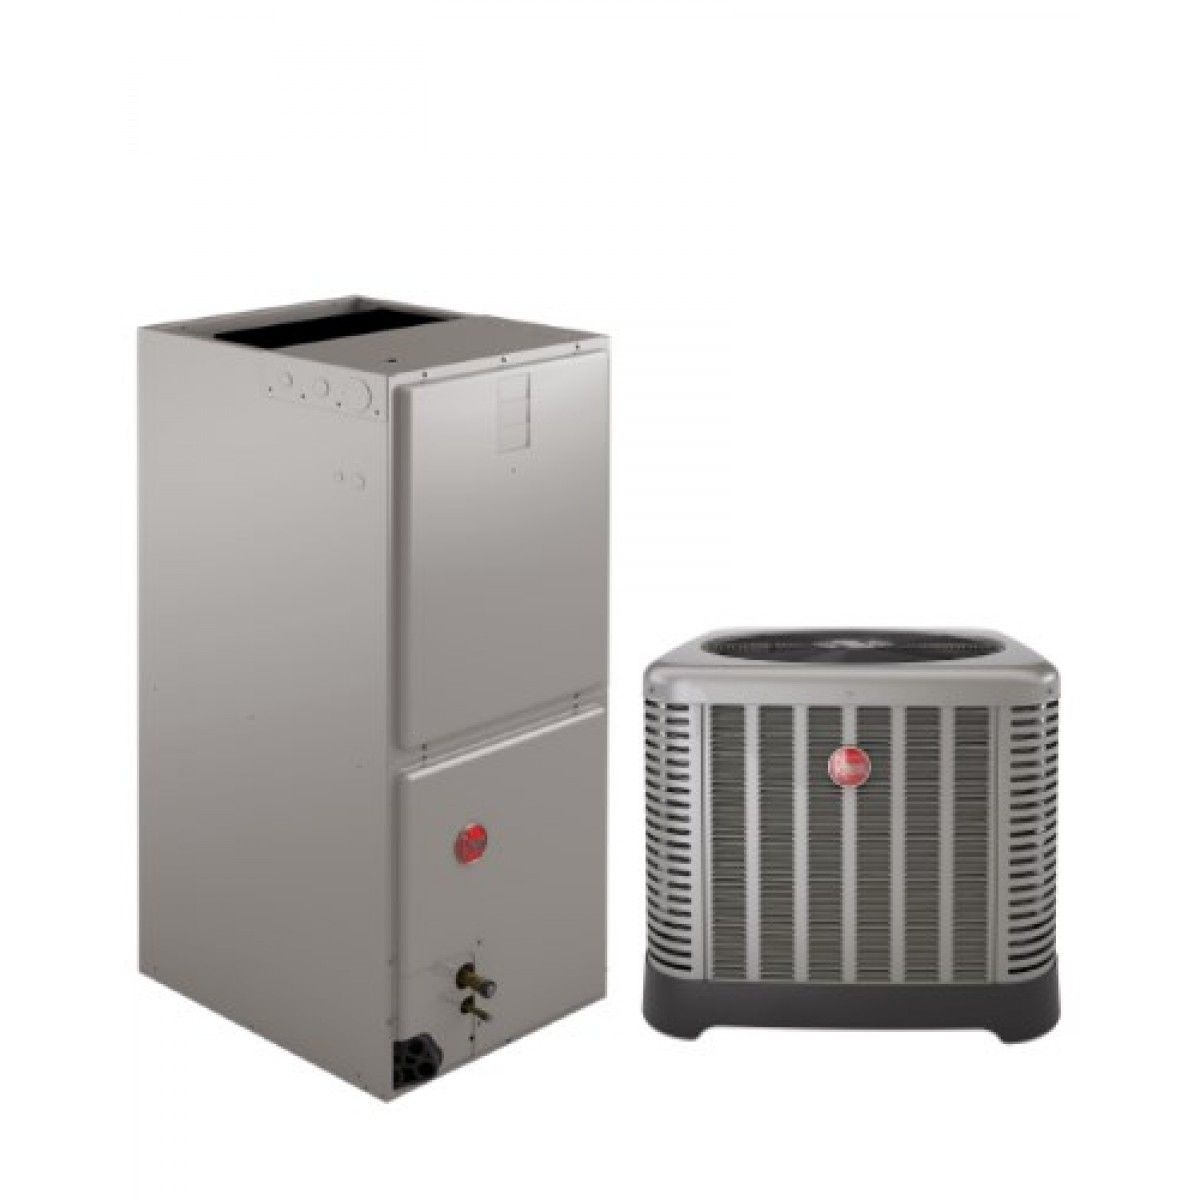 Rheem 2 0 Ton 14 Seer Air Conditioning System With